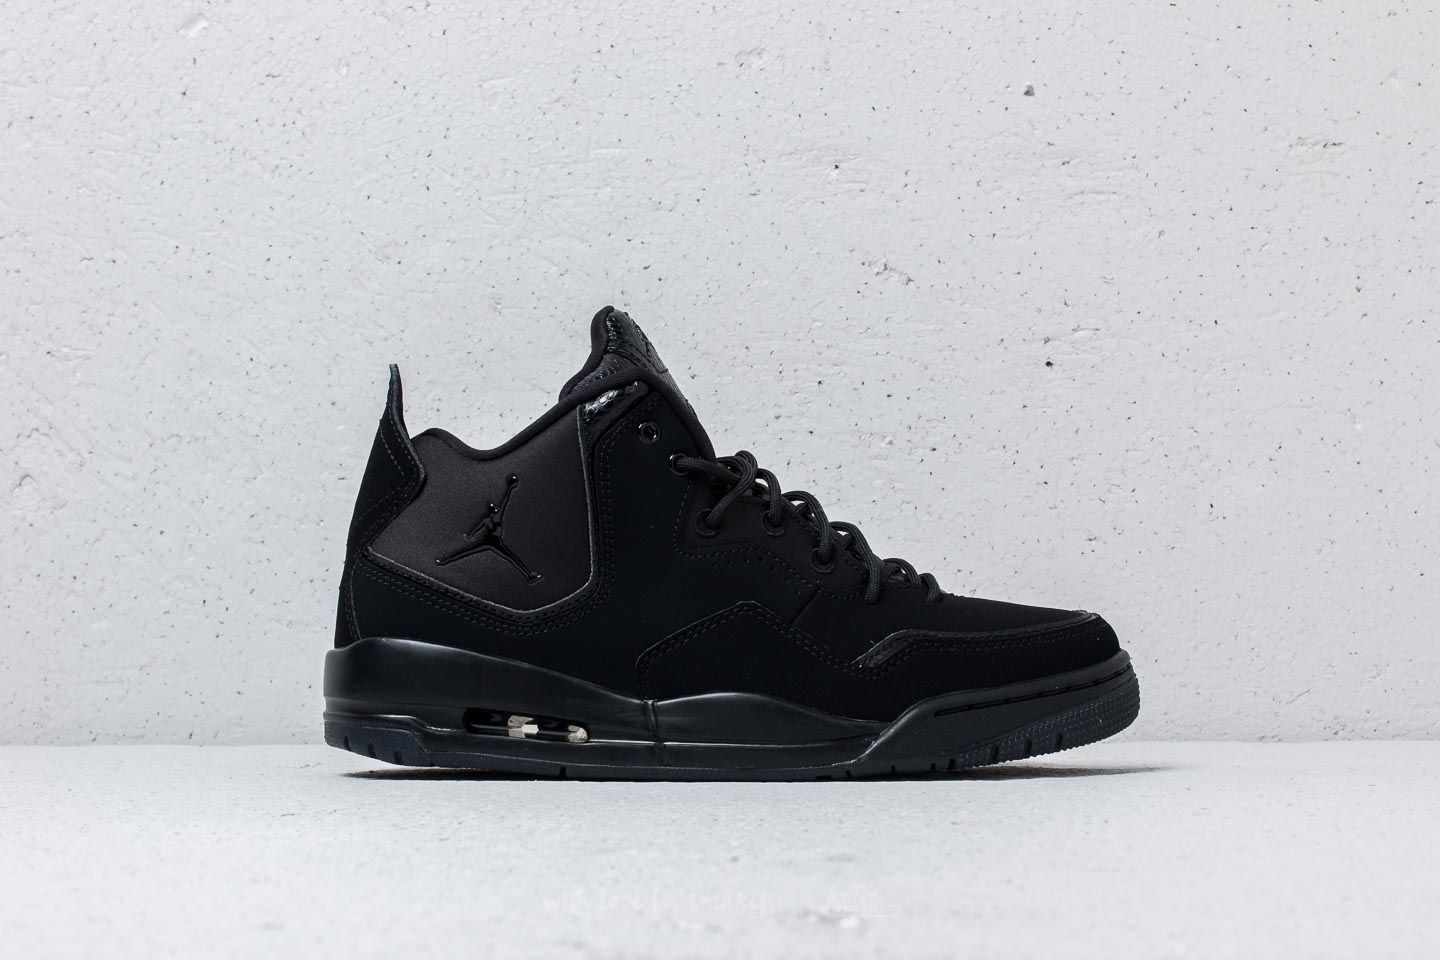 check out 10b20 11b97 Jordan Courtside 23 Black  Black-Black at a great price 88 € buy at